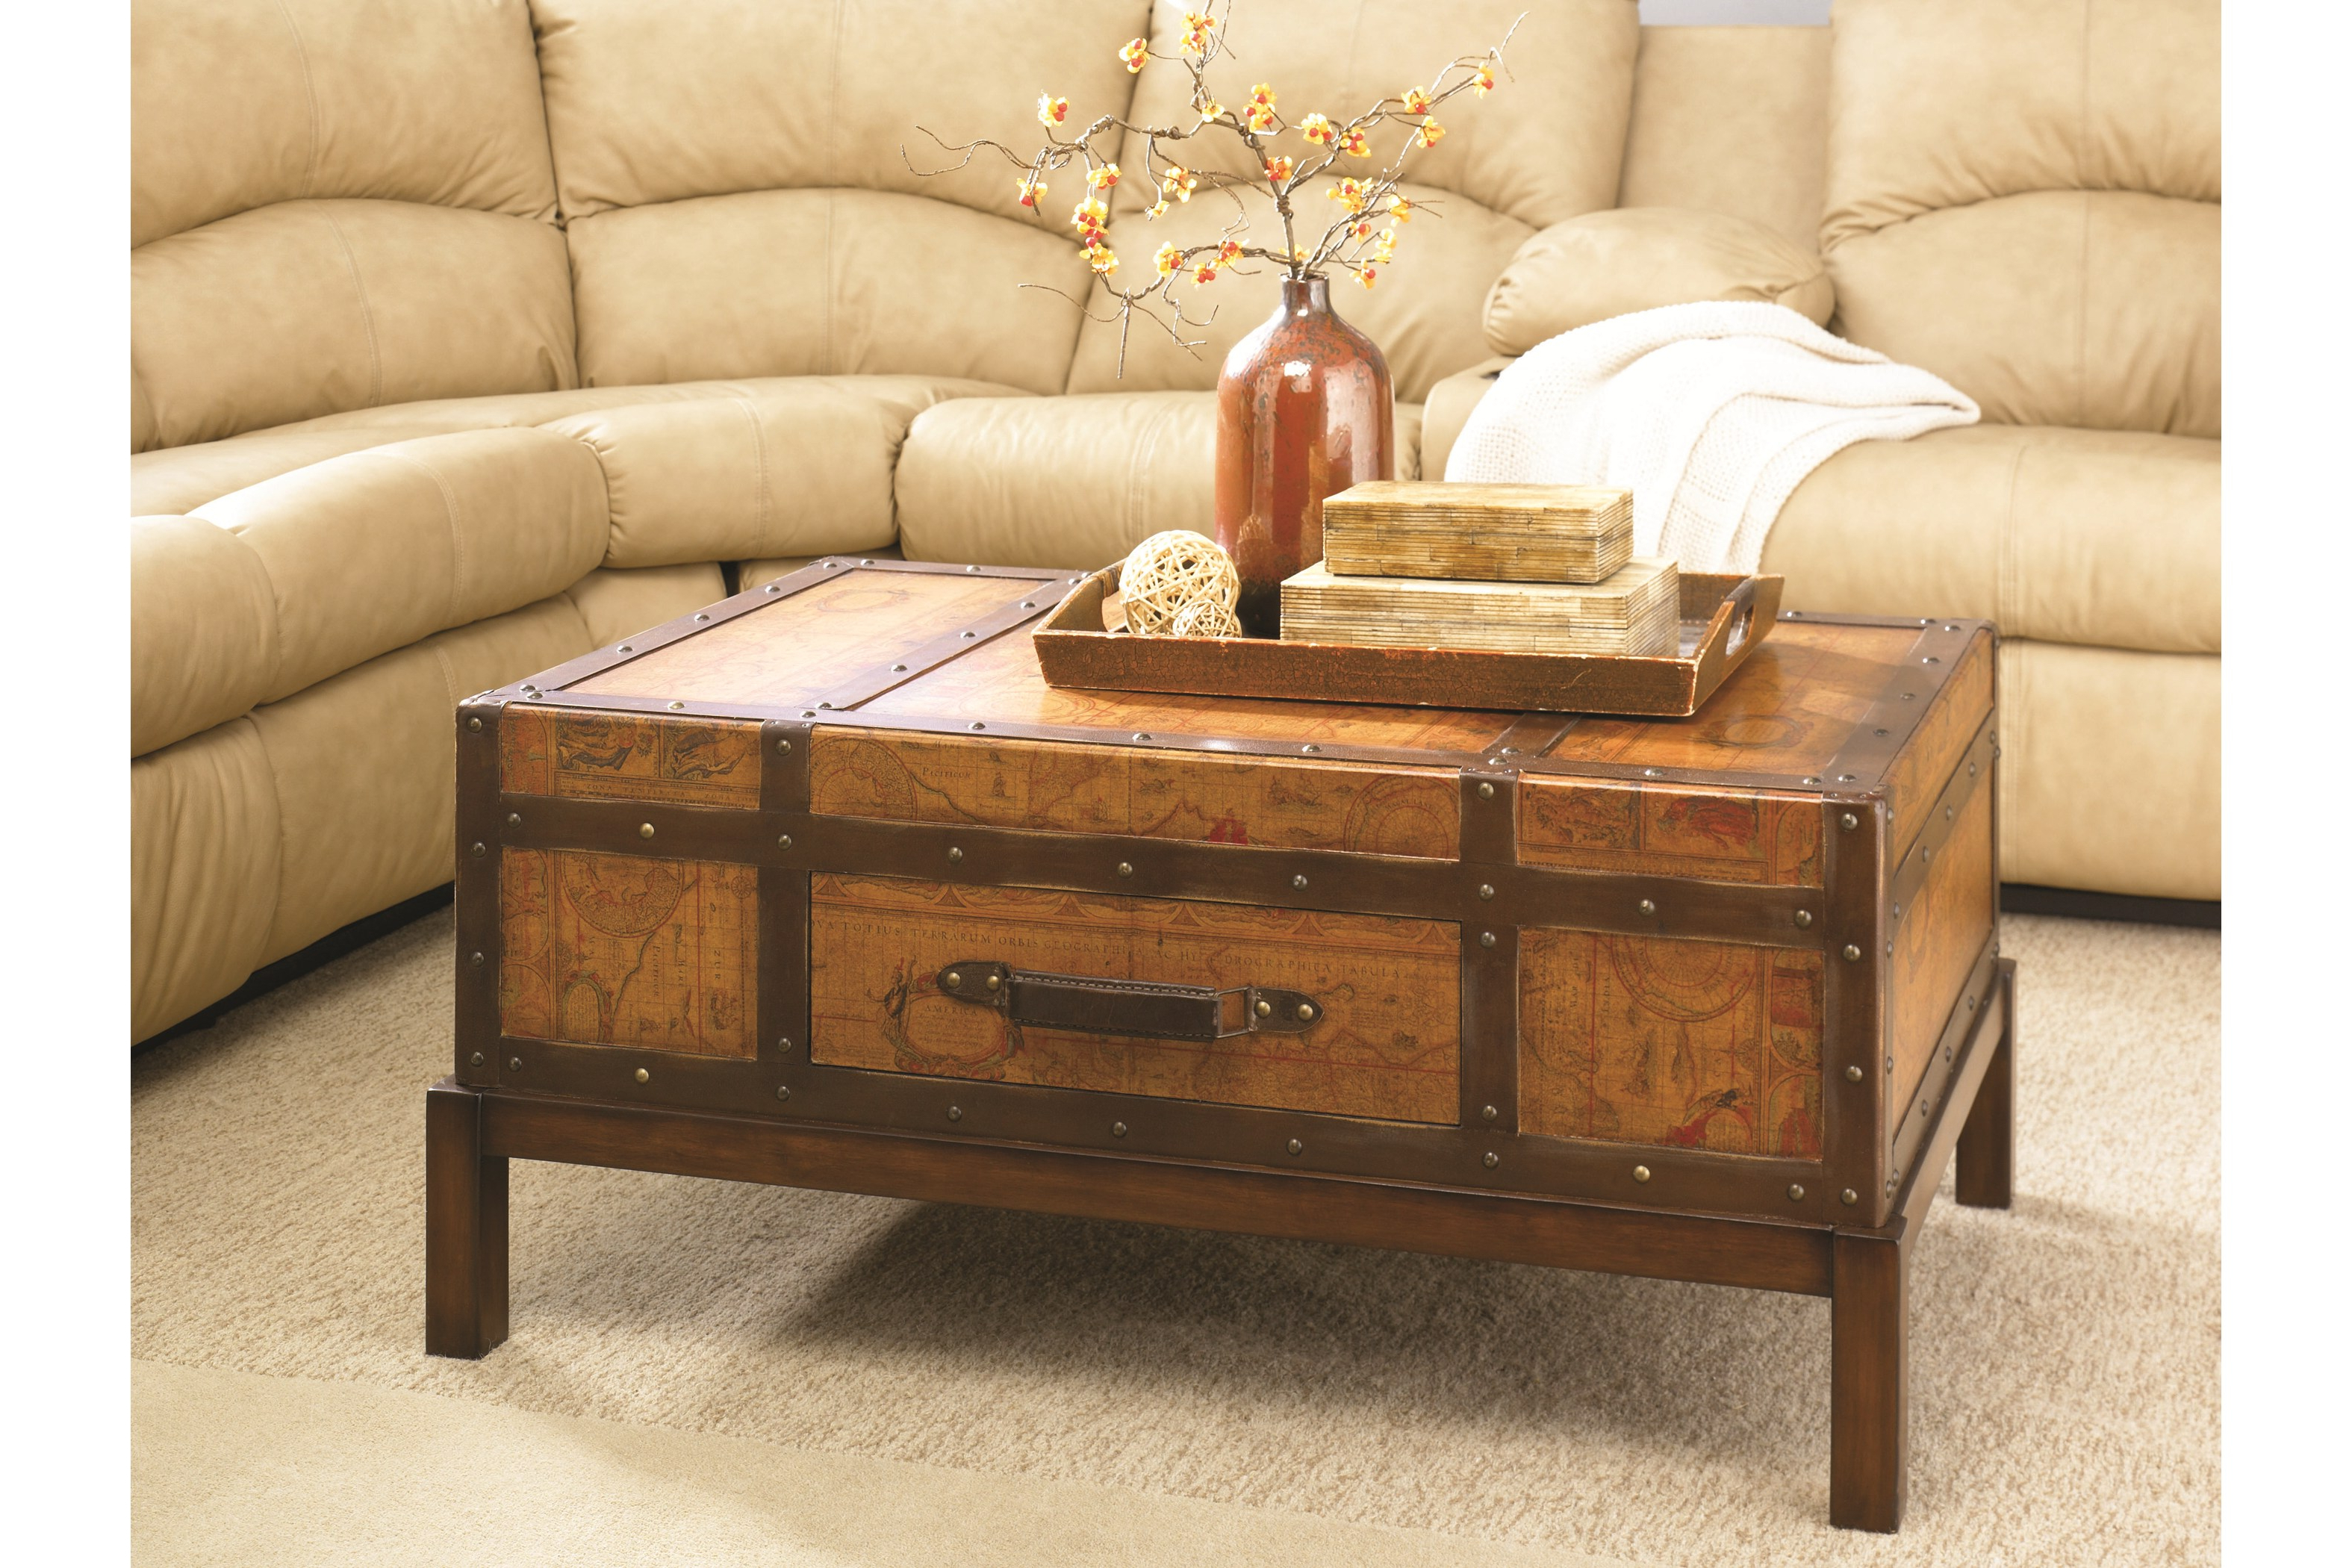 2019 Extra Sliced Log Coffee Table Walmart On Ottoman And Elegant Wood Inside Sliced Trunk Coffee Tables (View 8 of 20)